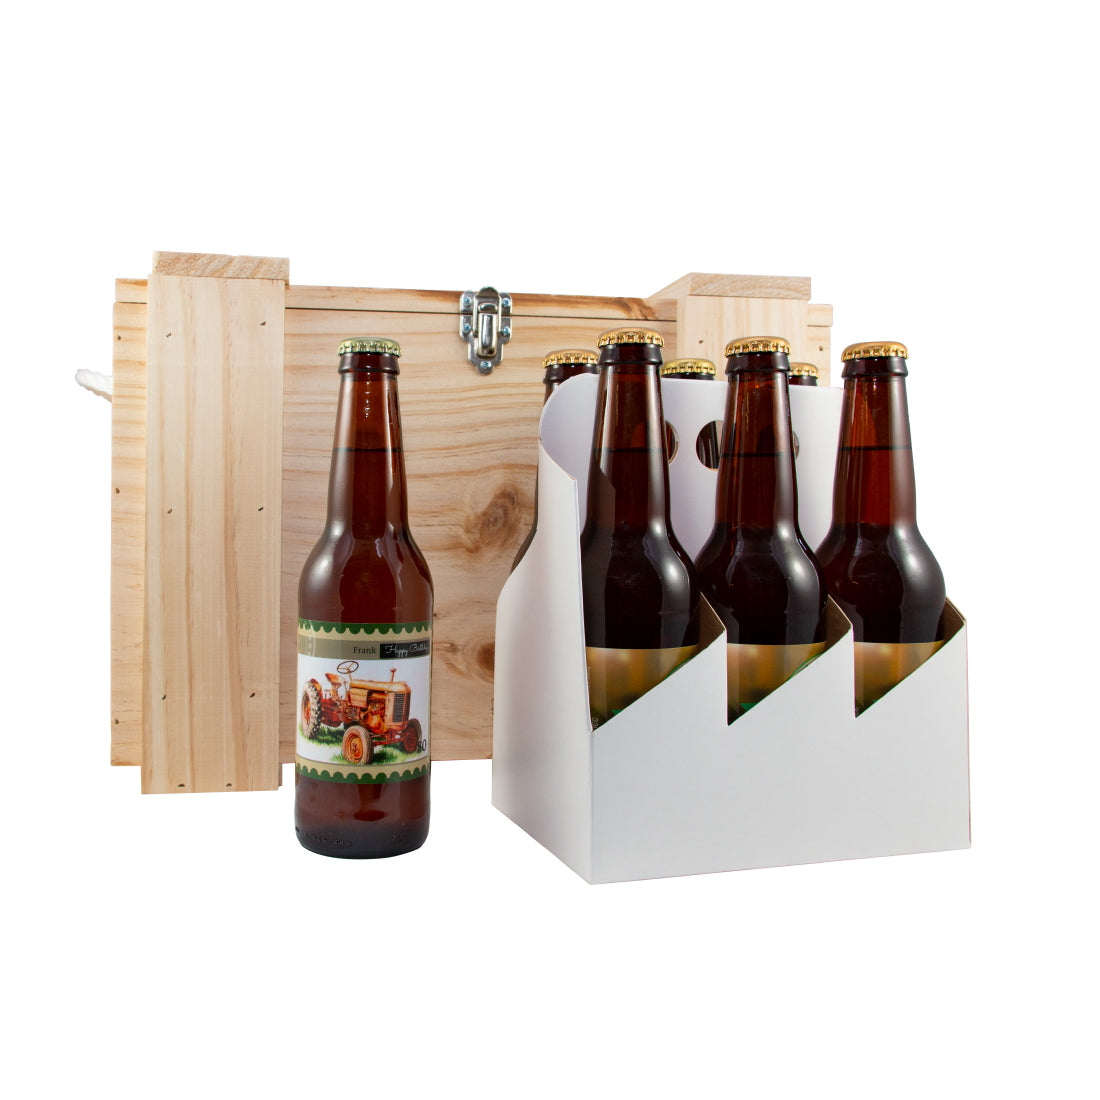 Craft Pale Ale - Wooden Beer Box - 330ml - Carton of 24